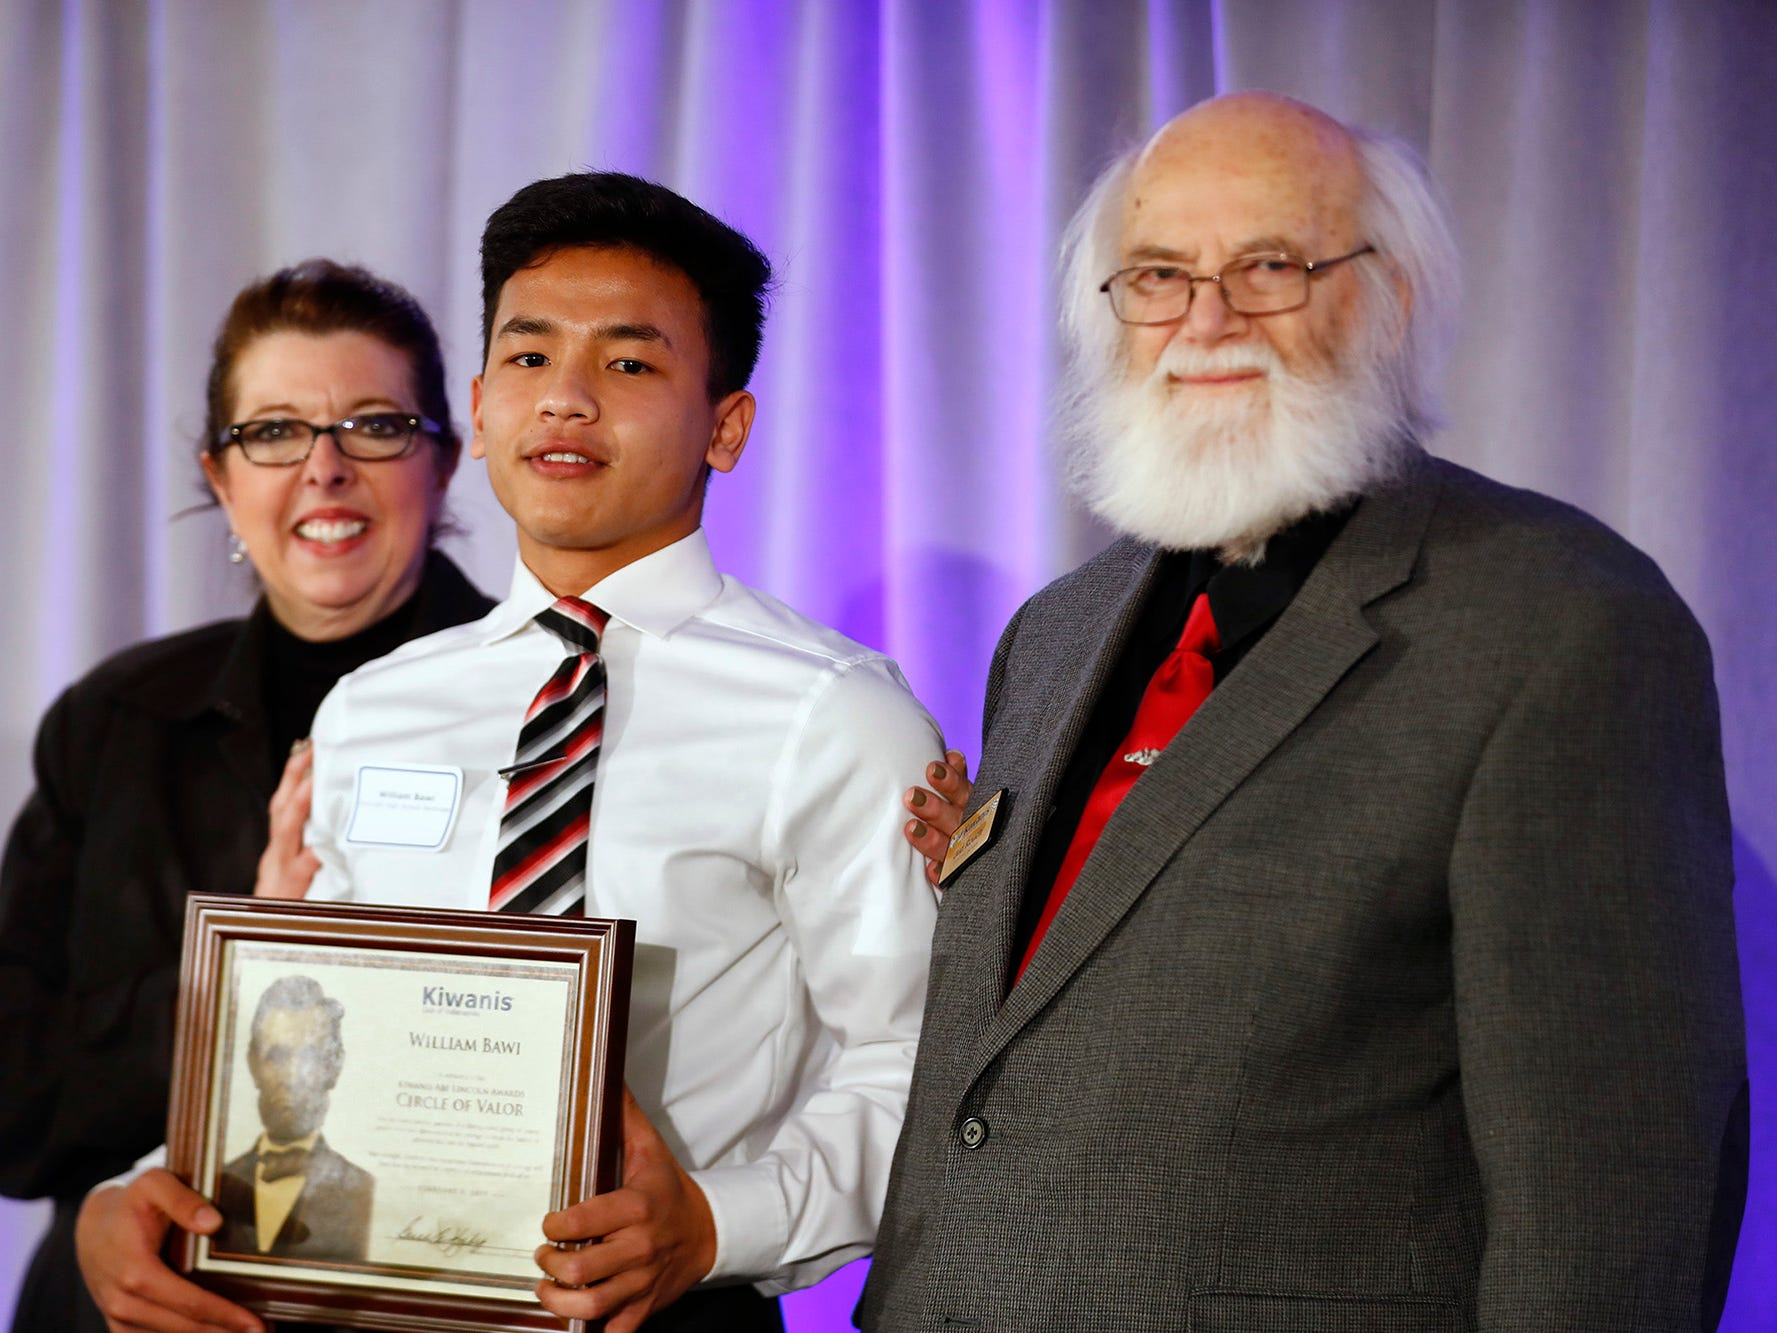 Roncalli High School student William Bawi, center, is honored with a Circle of Valor award at the 44th Annual Abe Lincoln Awards Program, Friday, Feb. 8, 2019. The Kiwanis Club of Indianapolis program was held at Ivy Tech Community College.  20 high school student were honored at the annual event which celebrates overcoming adversity in life to succeed.